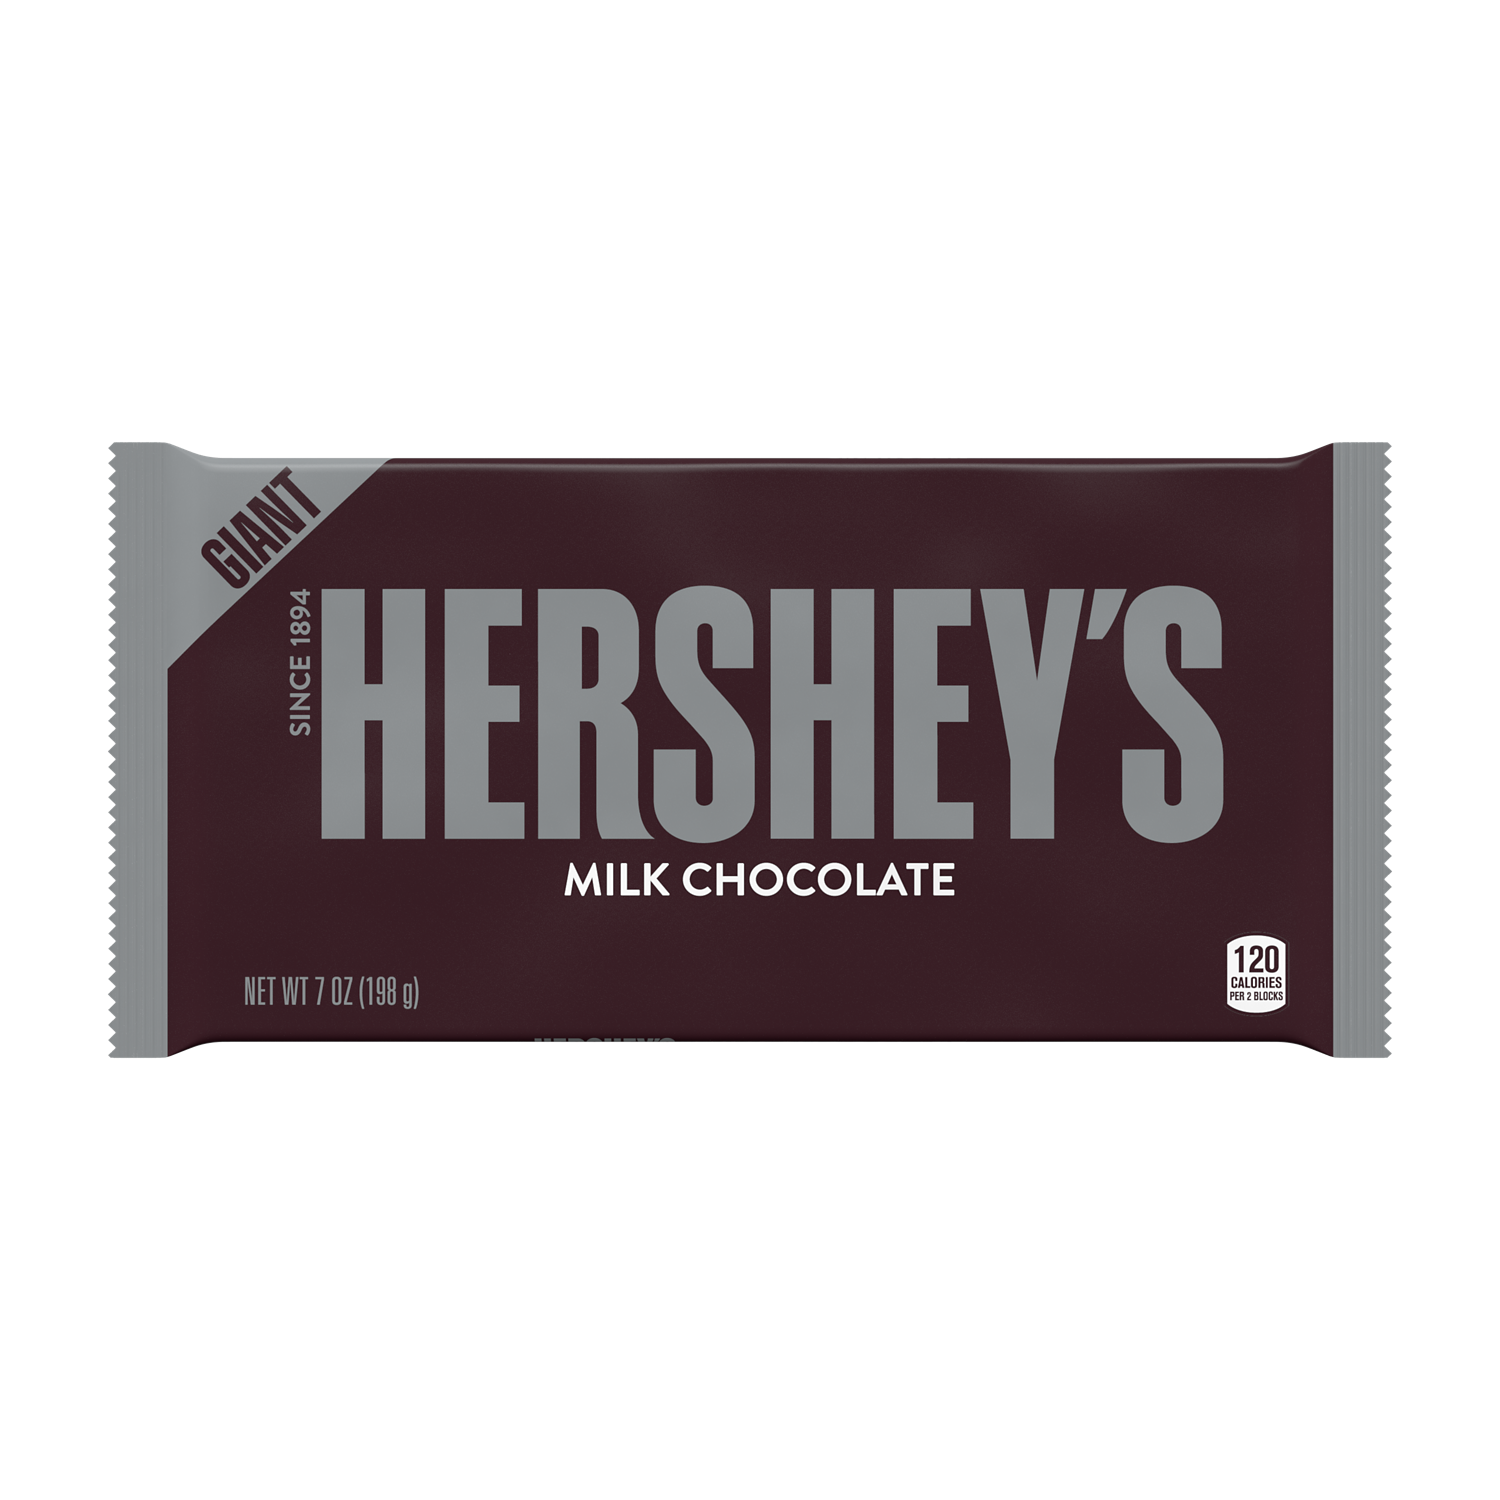 HERSHEY'S Milk Chocolate Giant Candy Bar, 7 oz - Front of Package